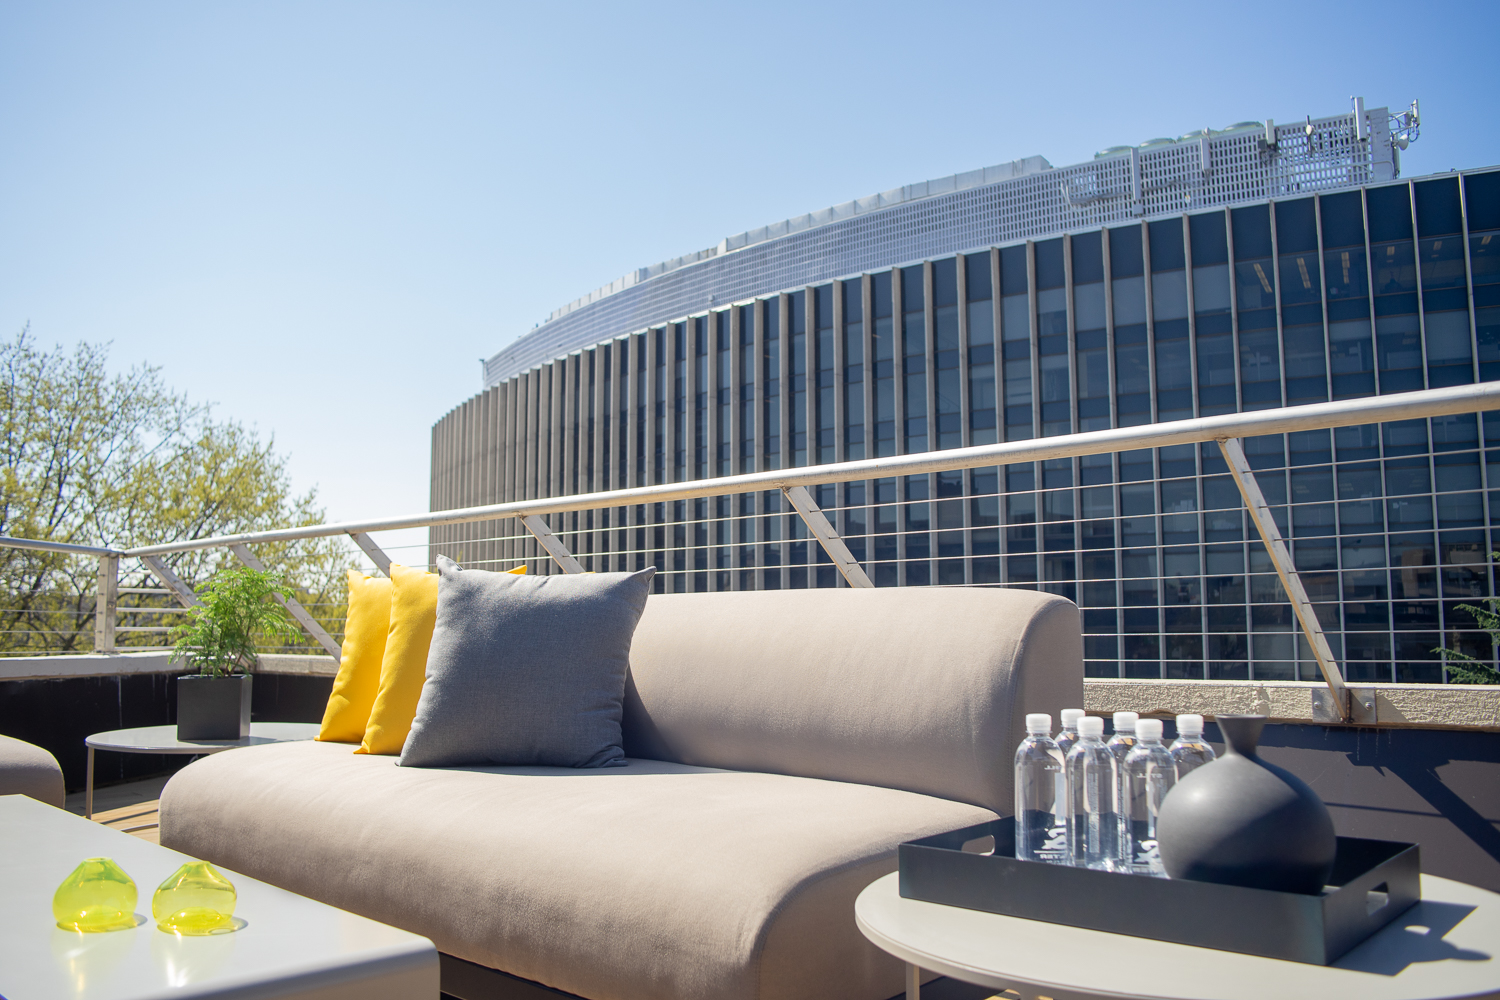 Rooftop views at Hotel Hive, in Foggy Bottom, Washington, DC.